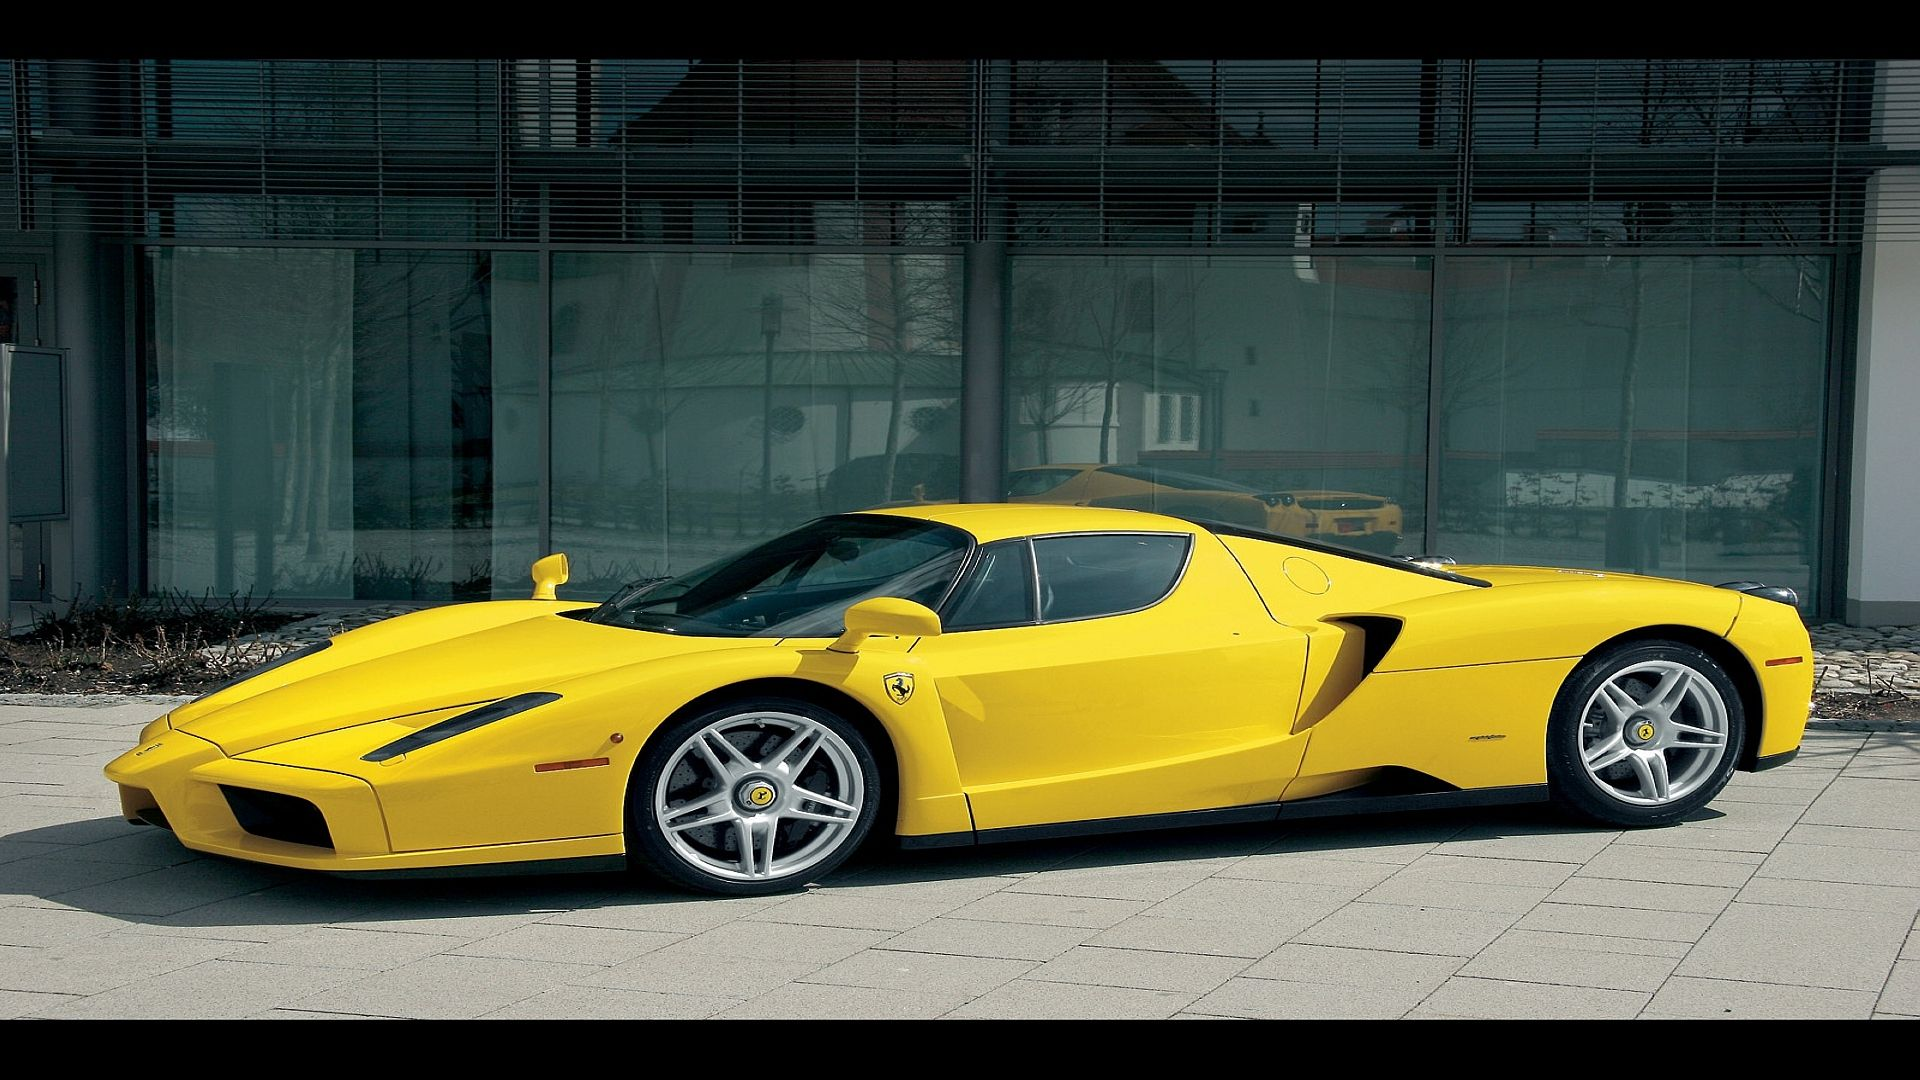 Car Exotic Sports Ferrari Images #165 Wallpaper | wallmaxis ...